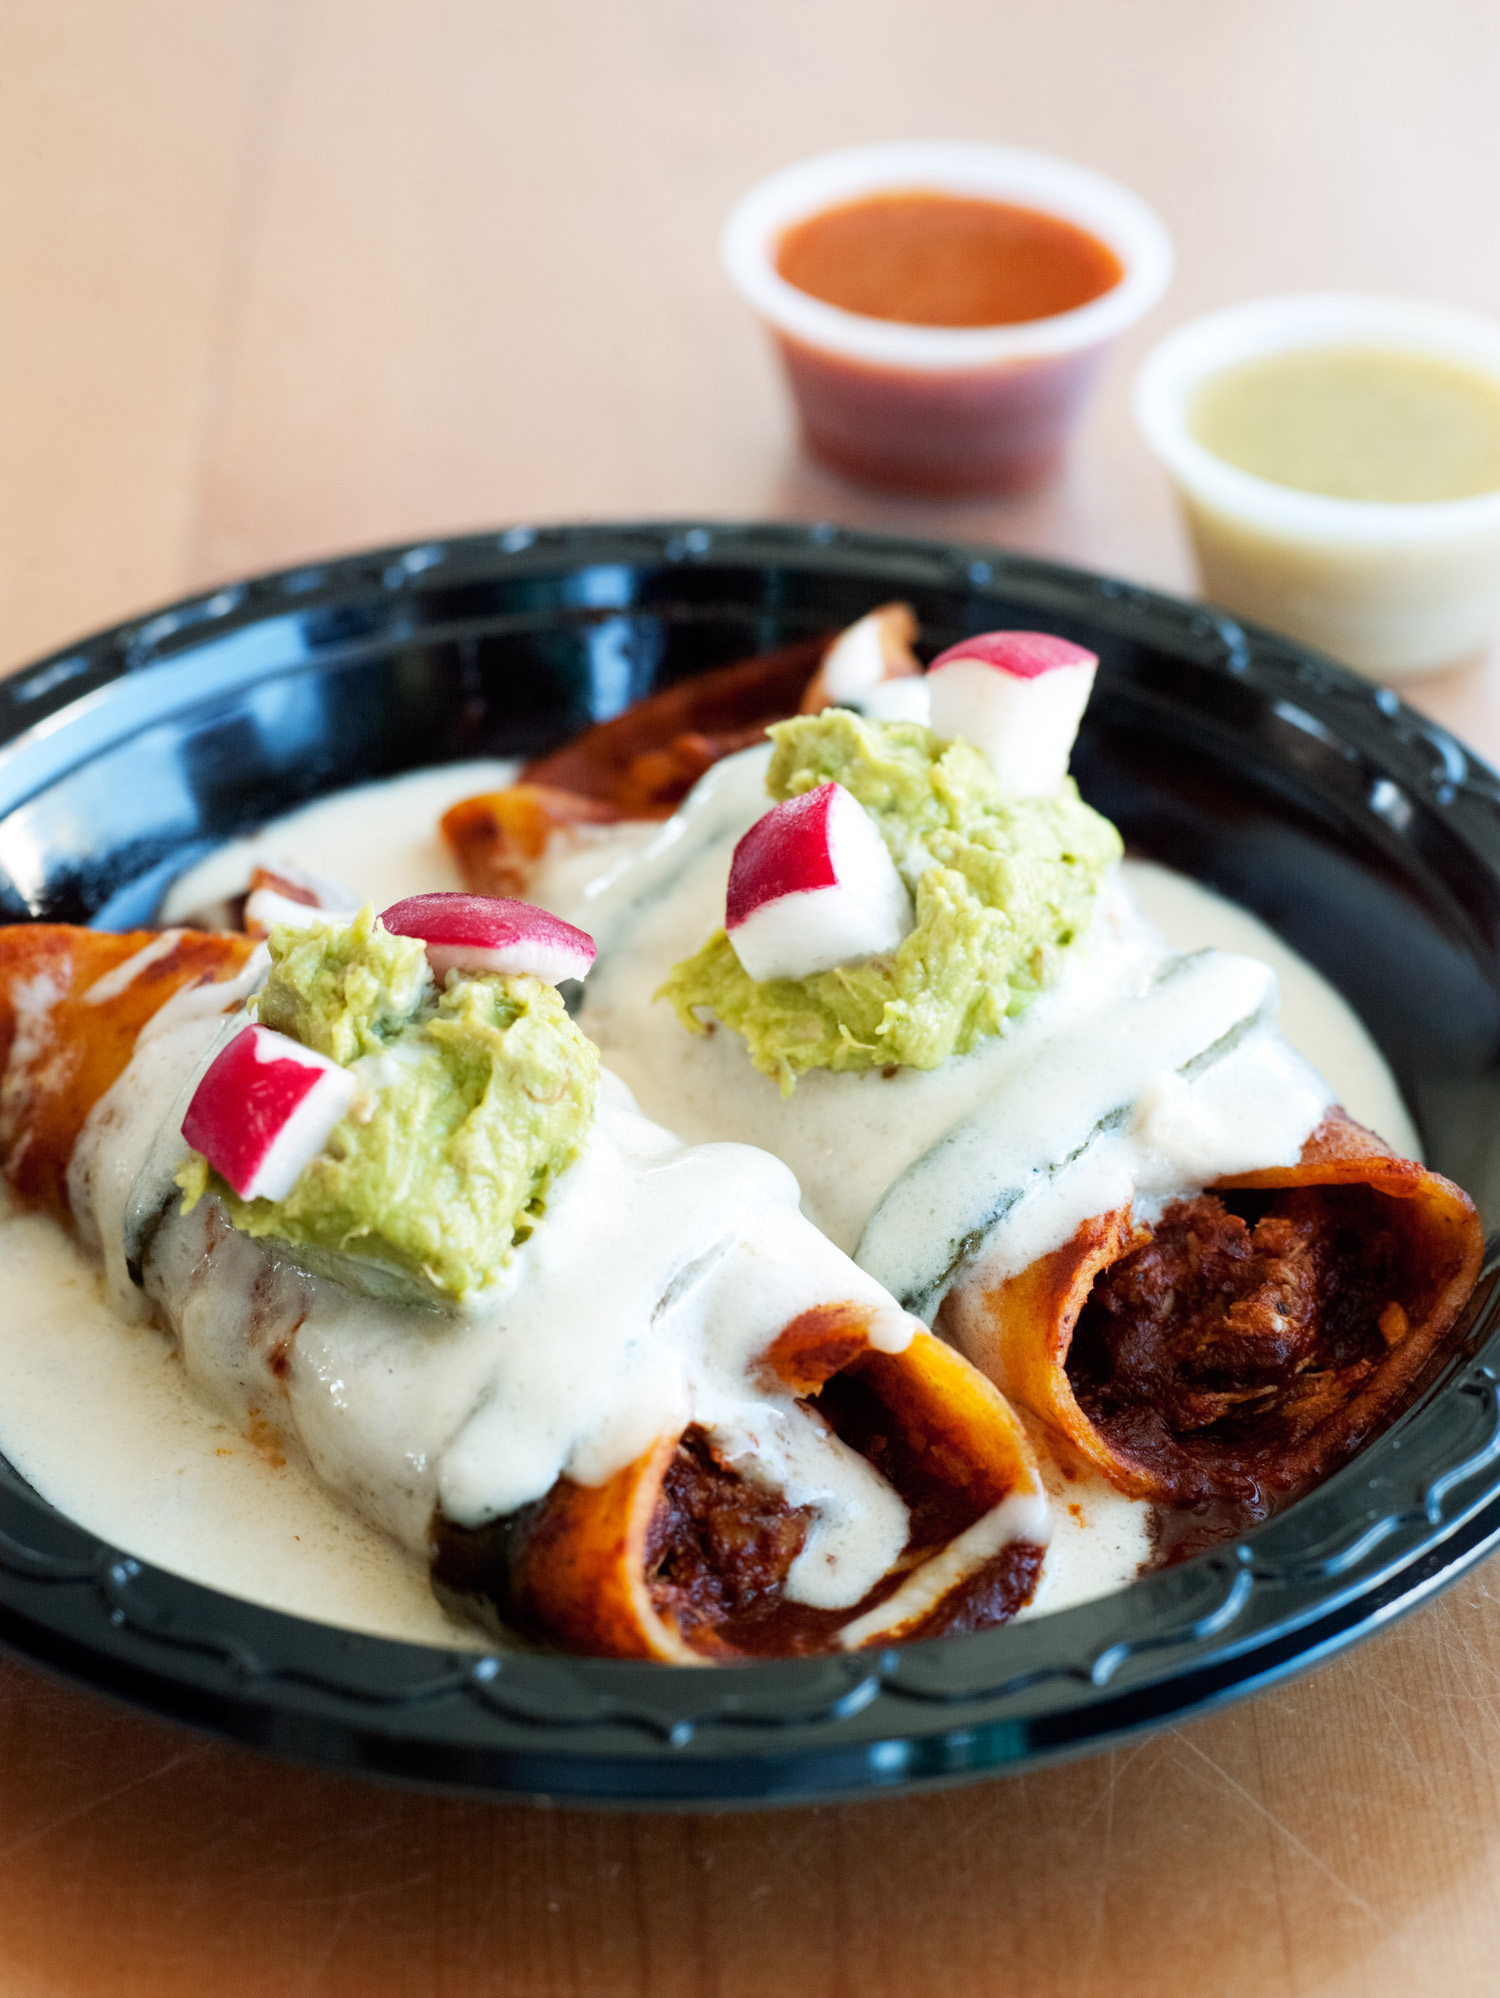 More great spots for South-of-the-Border eats